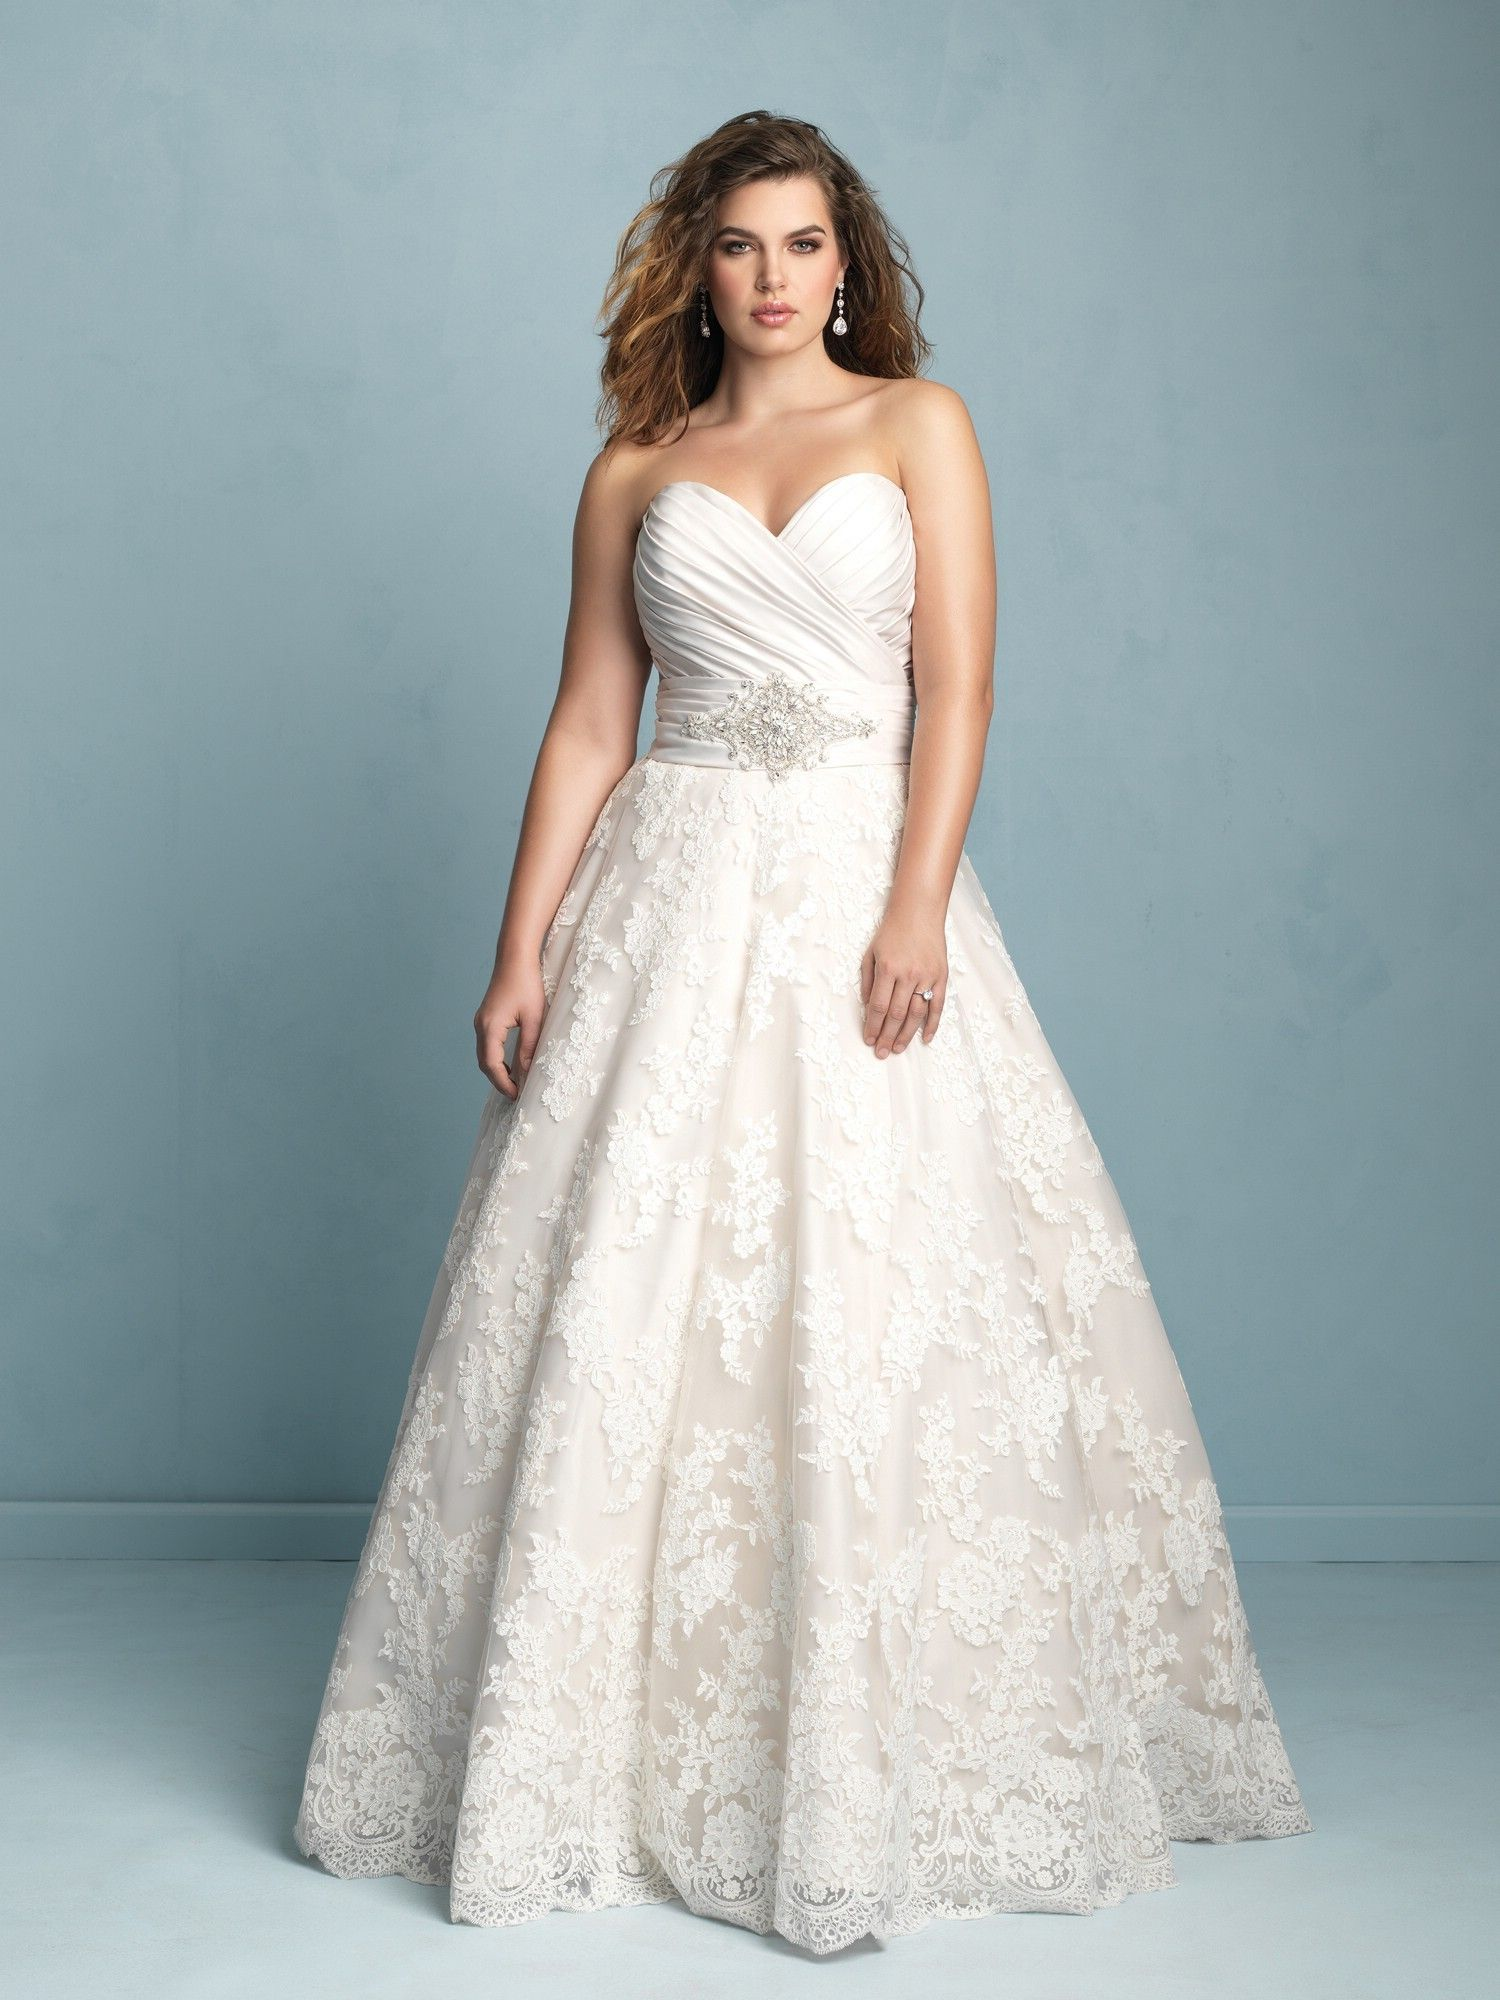 Allure Women Wedding Dresses - Style W351 [W351] : Wedding Dresses ...